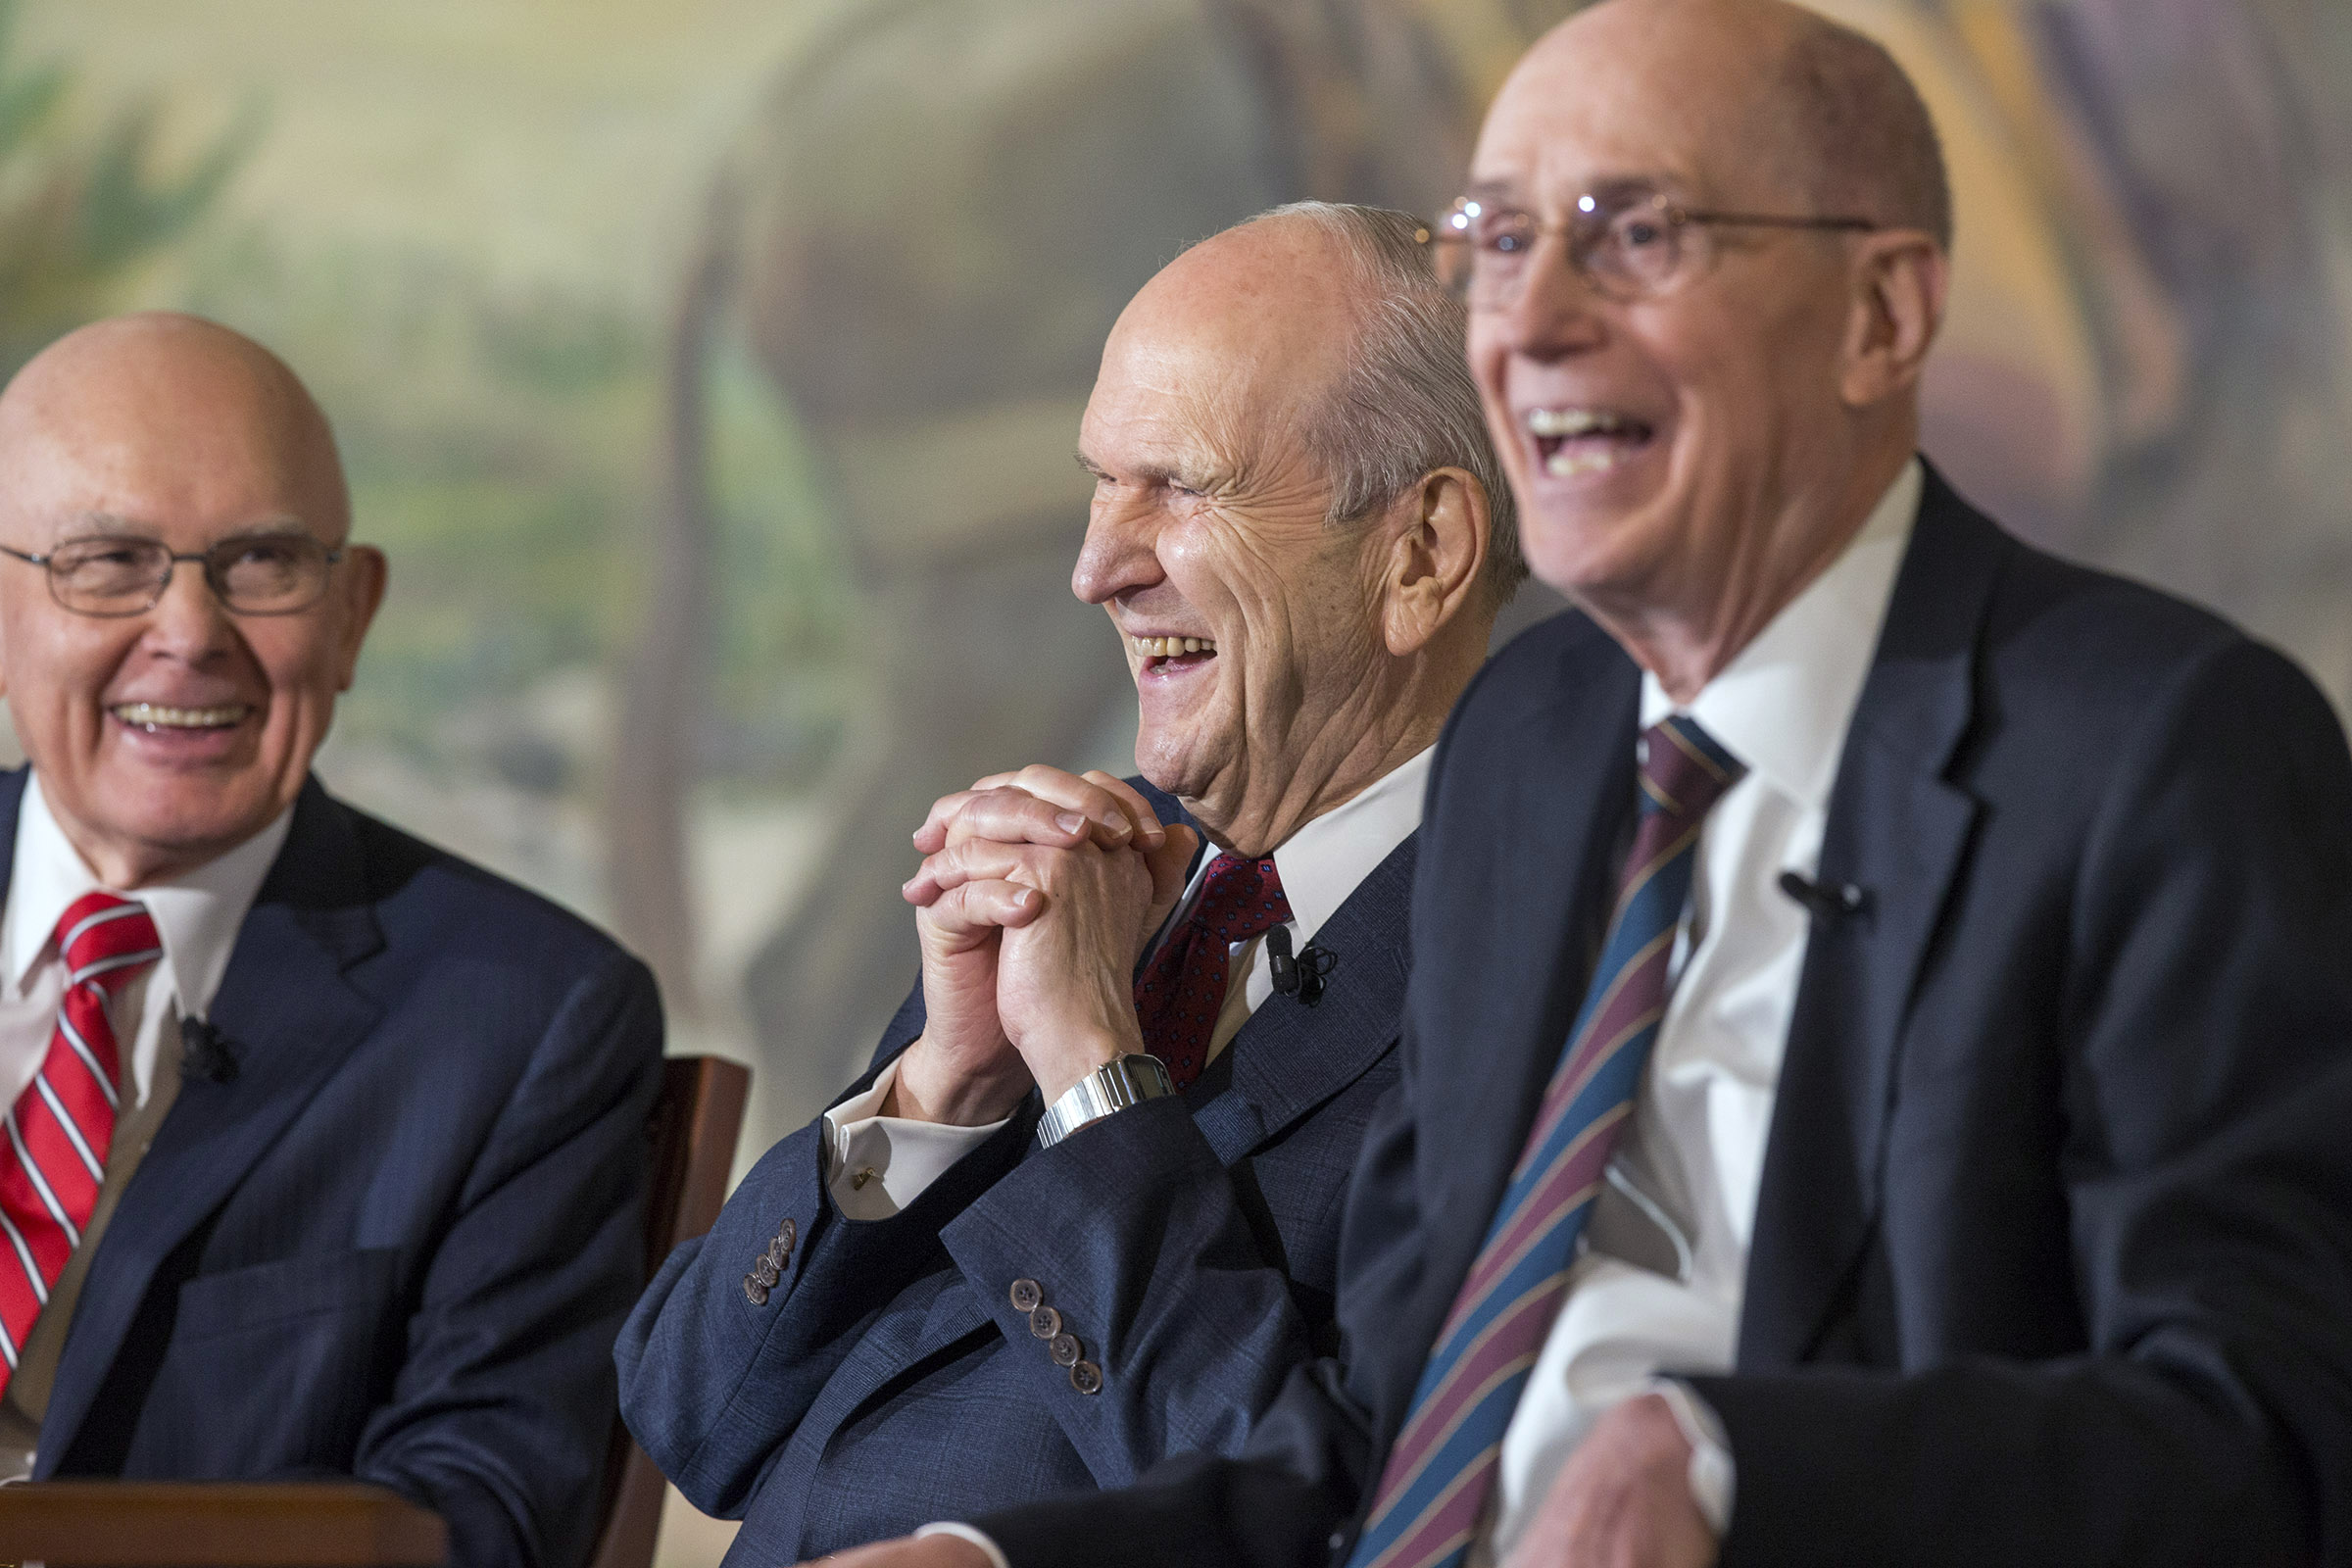 President Russell M. Nelson, the 17th President of The Church of Jesus Christ of Latter-day Saints, and his councilors President Dallin H. Oaks, first counselor, left, and President Henry B. Eyring, second counselor, right, share in a laugh at a press conference in Salt Lake City, Utah on Tuesday, Jan. 16, 2018.